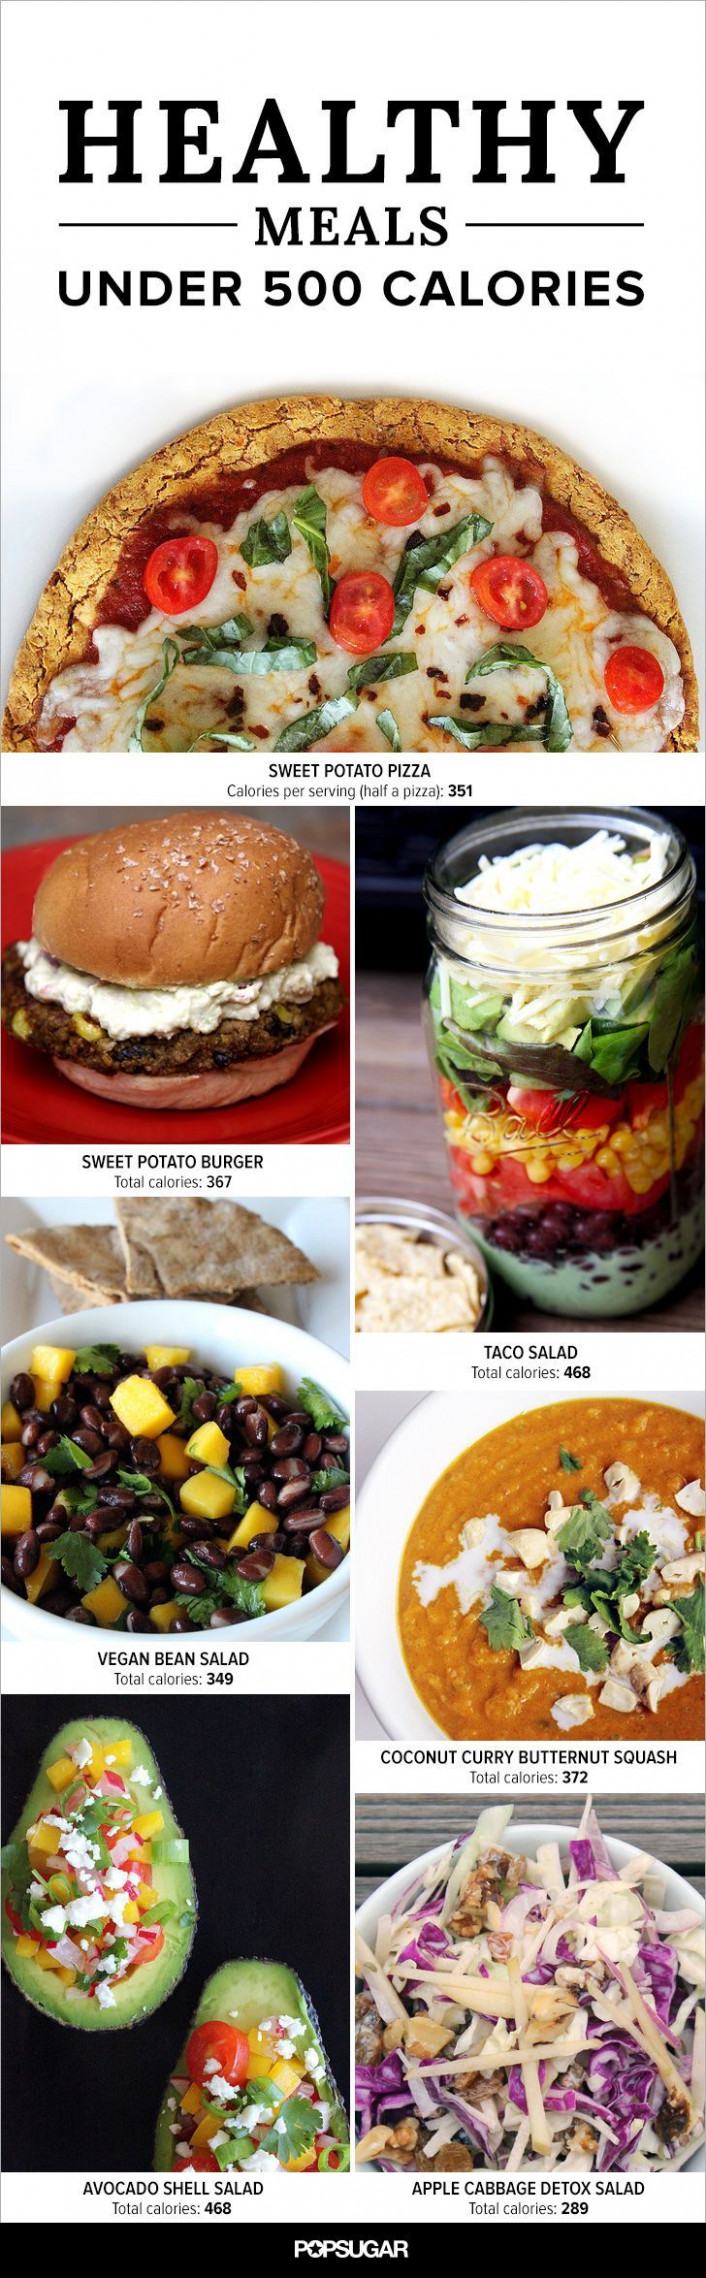 Lose Weight With These 50+ Meals Under 500 Calories - Dinner Recipes Less Than 500 Calories